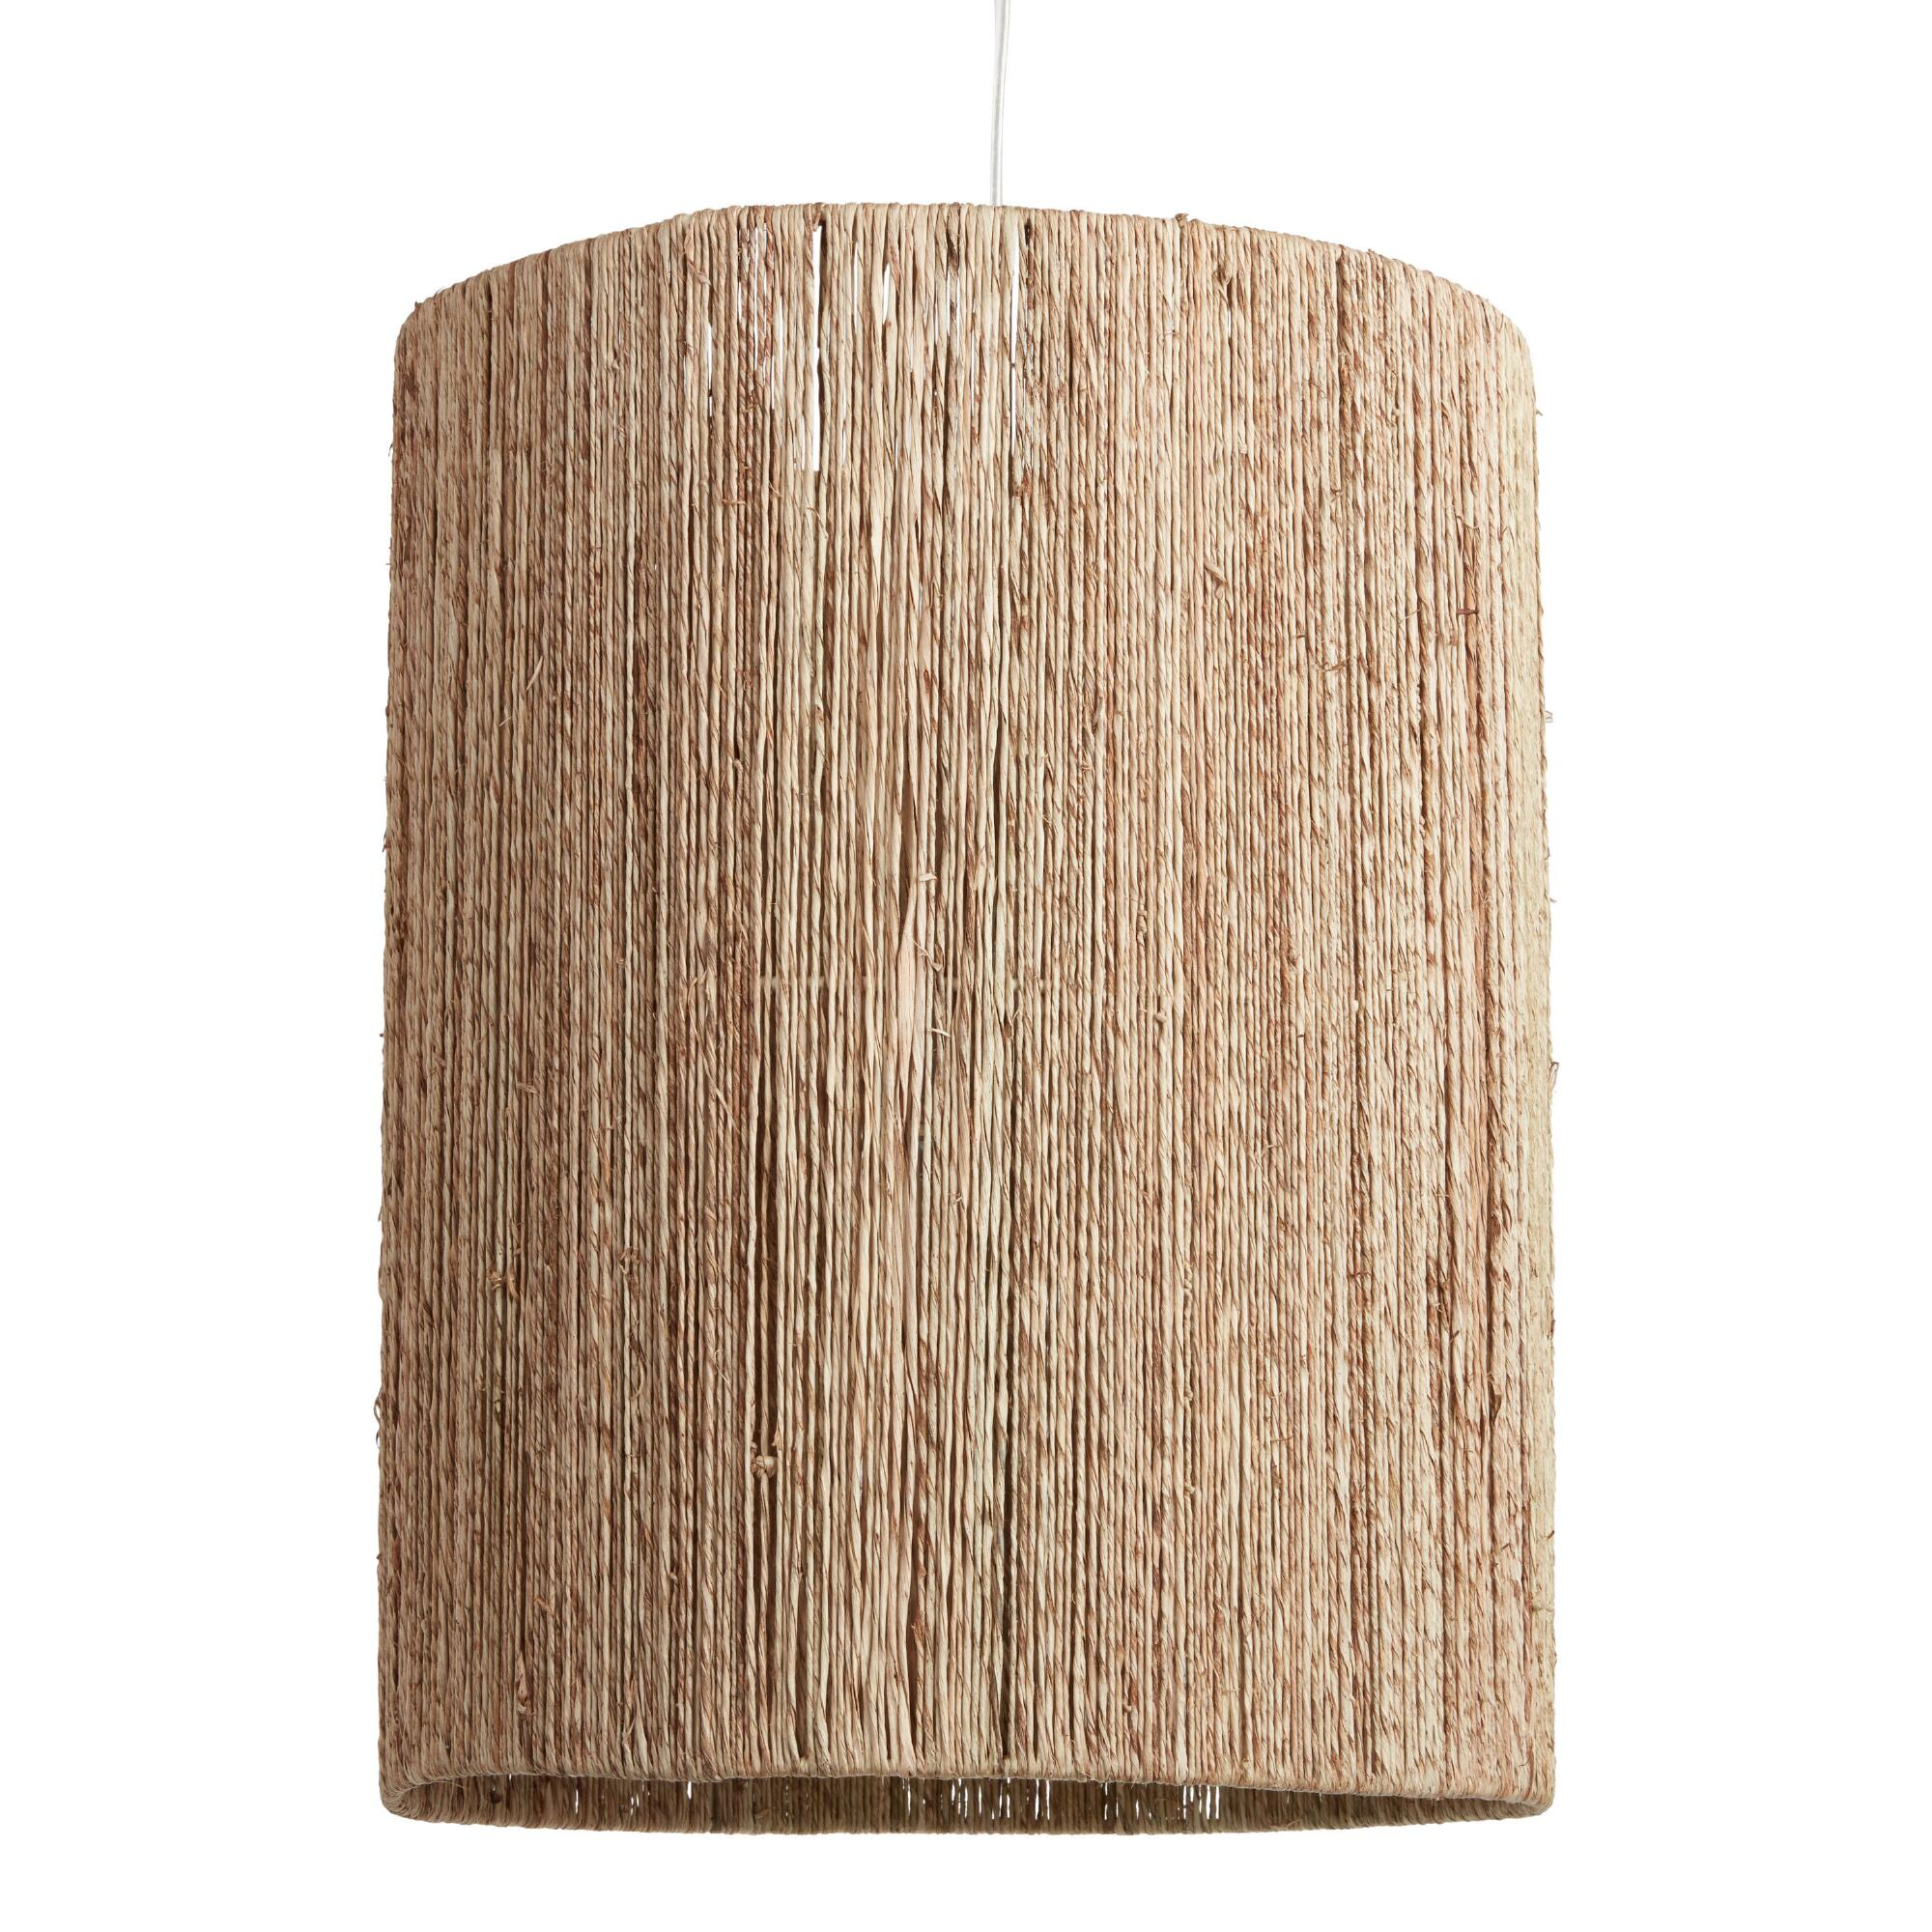 Tall Woven Jute Drum Floor Lamp Shade: Natural - Natural Fiber by World Market